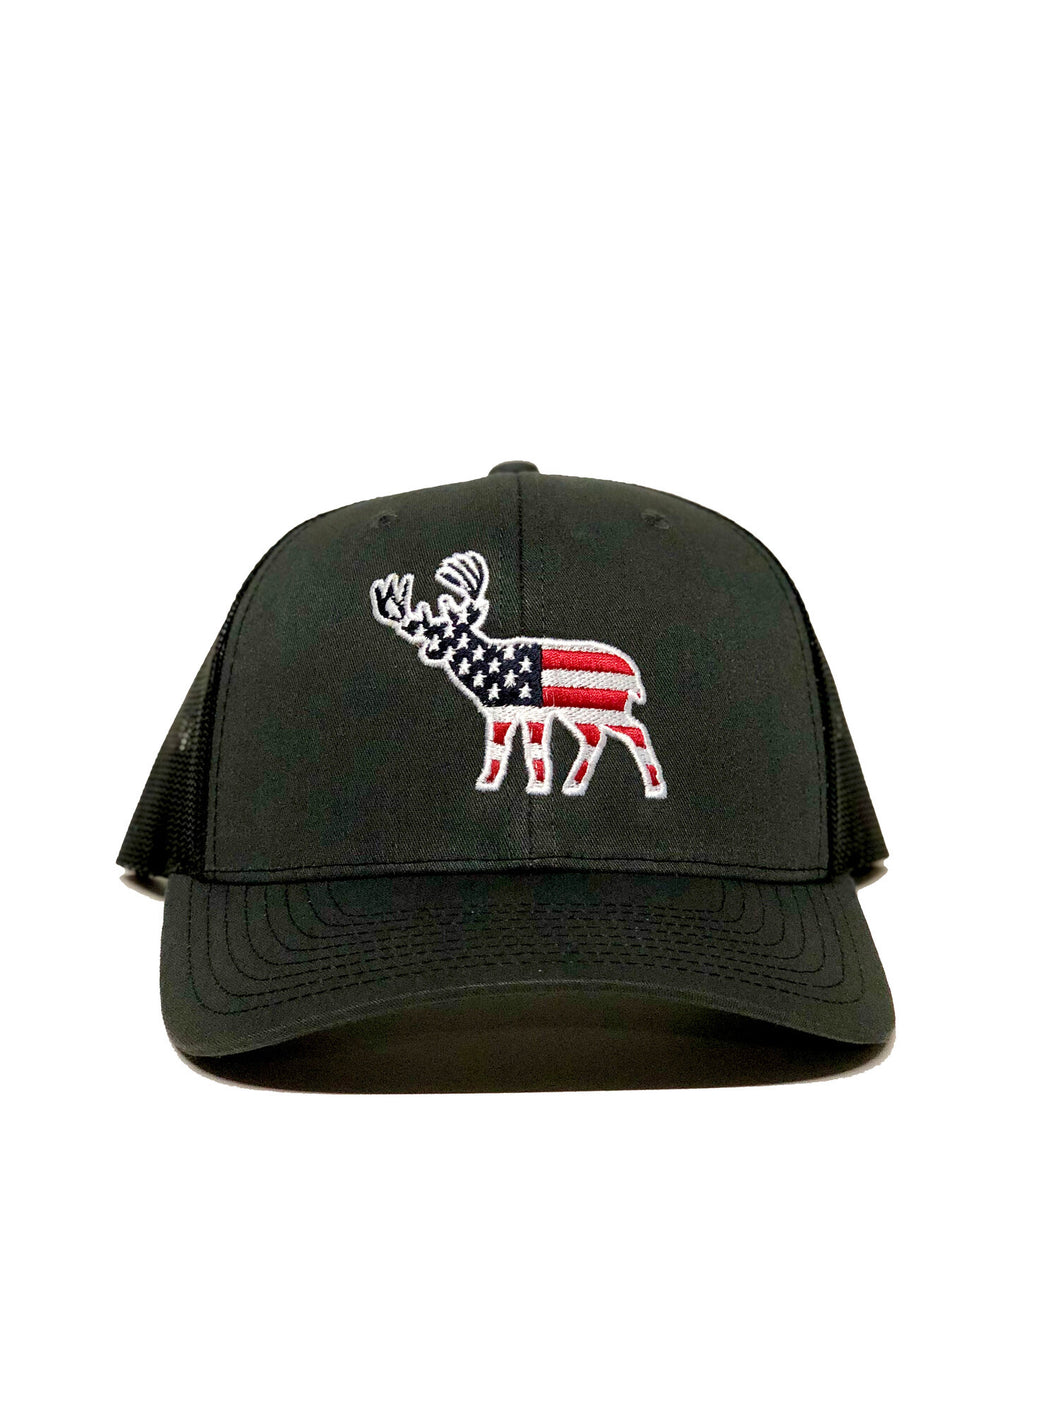 Southern Snap USA Deer Trucker Hat Gray/Black